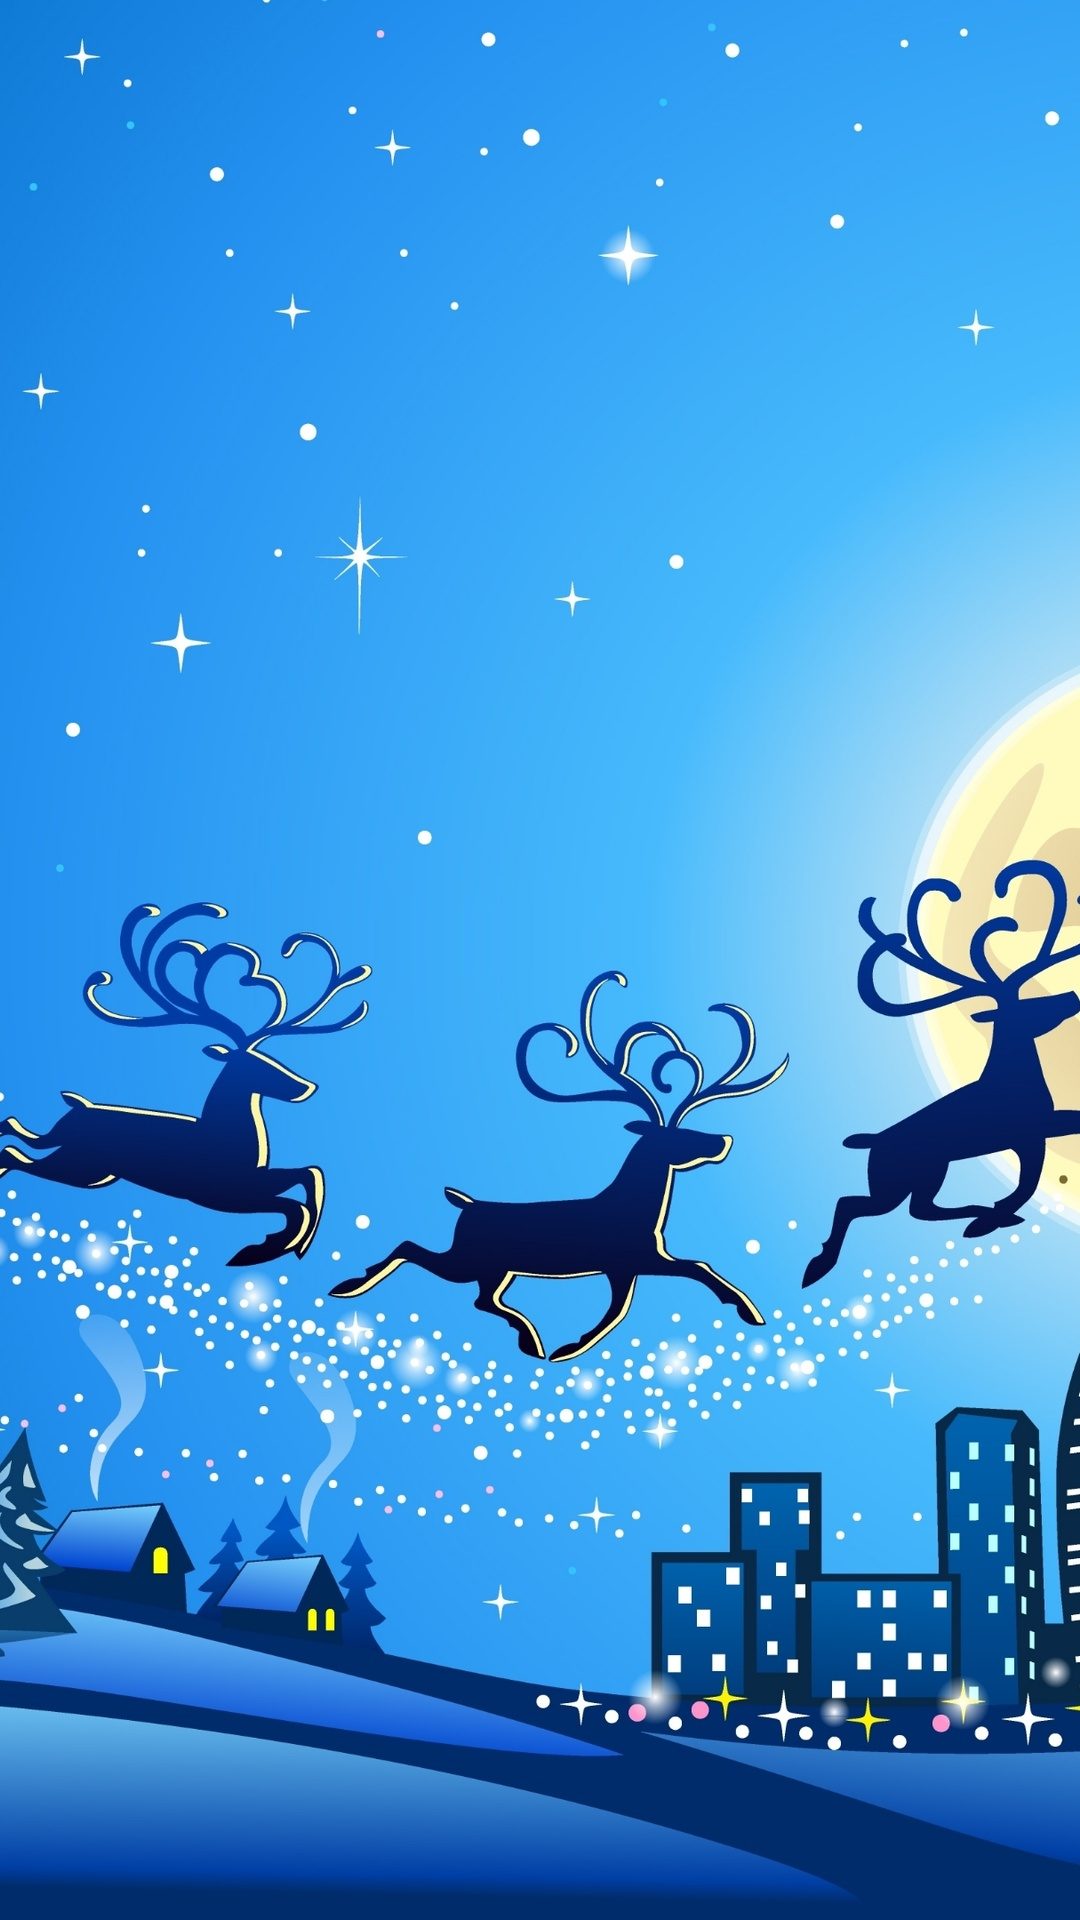 Christmas Hd Wallpaper Iphone.Happy Christmas Iphone Wallpaper